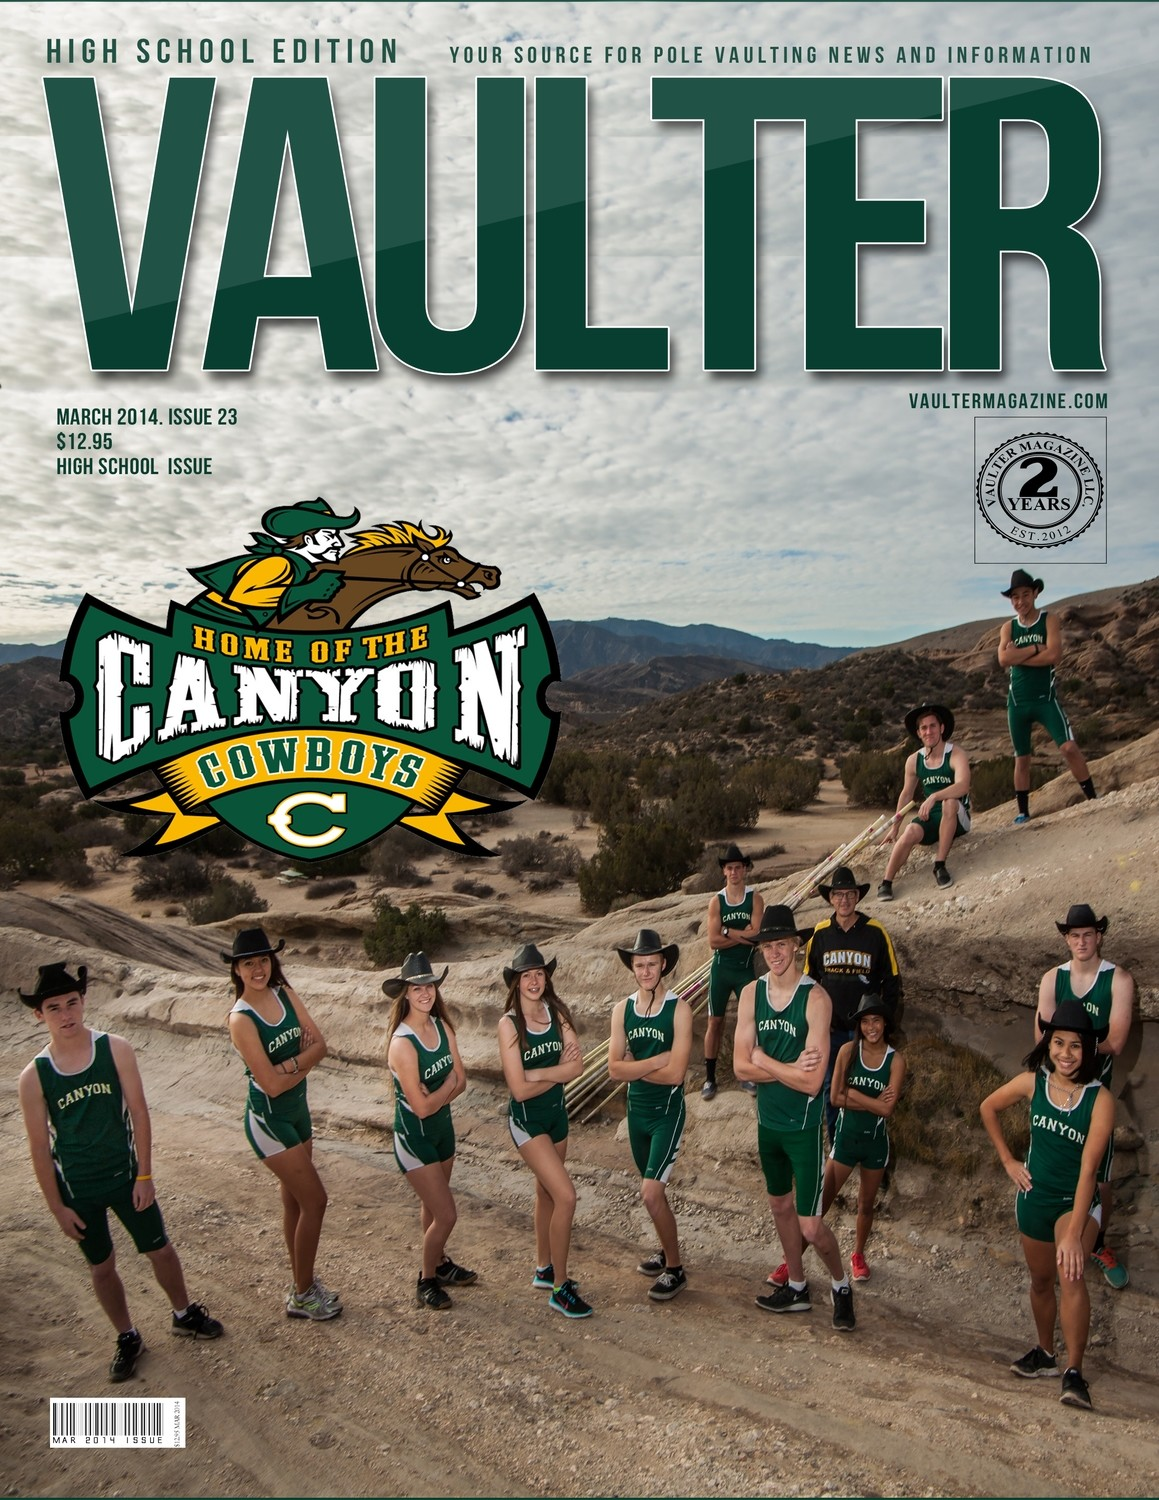 Buy a March 2014 Canyon High School Magazine - Get Poster for $20 - That's $5 Off